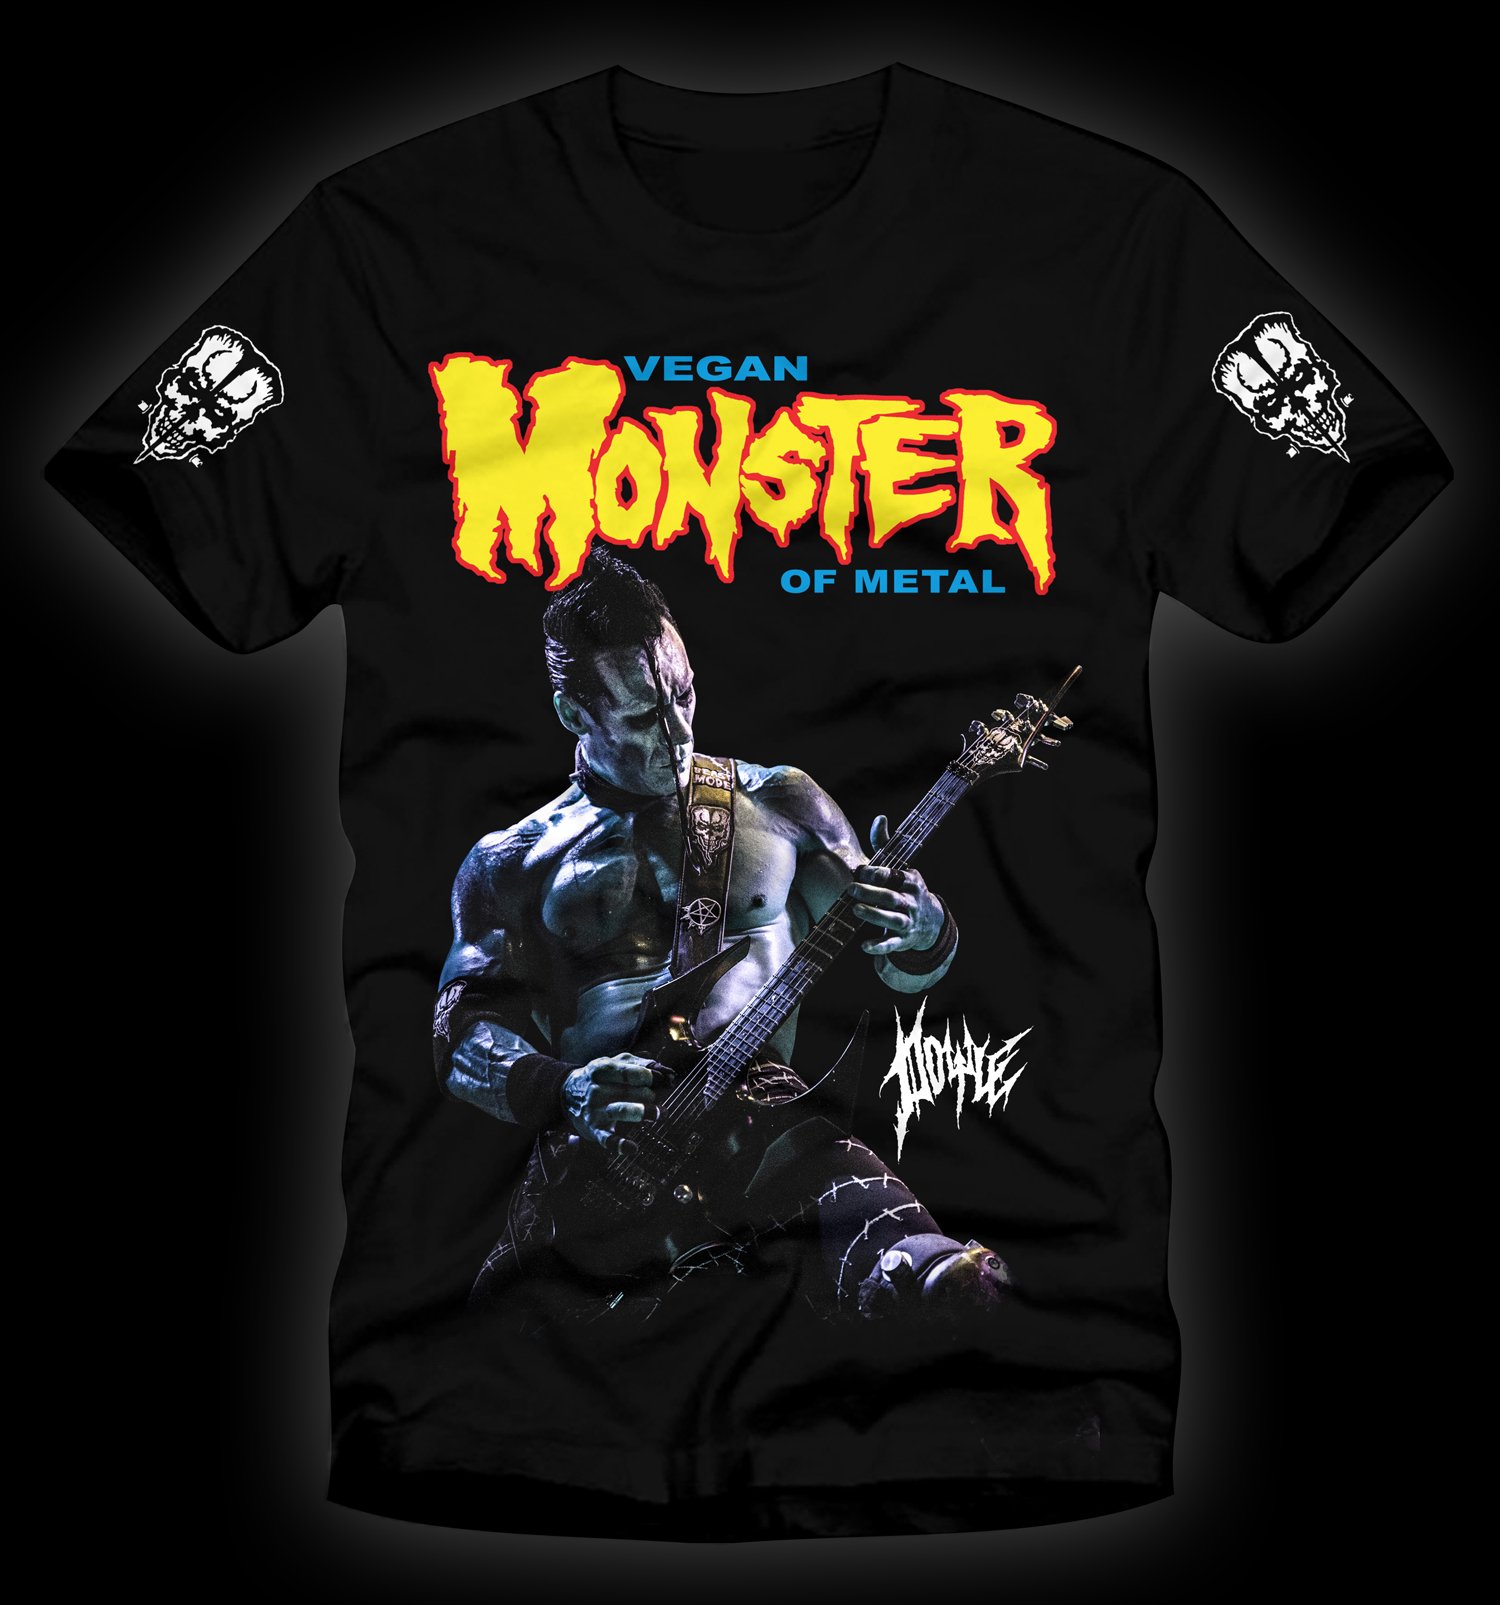 Doyle Vegan Monster Shirt